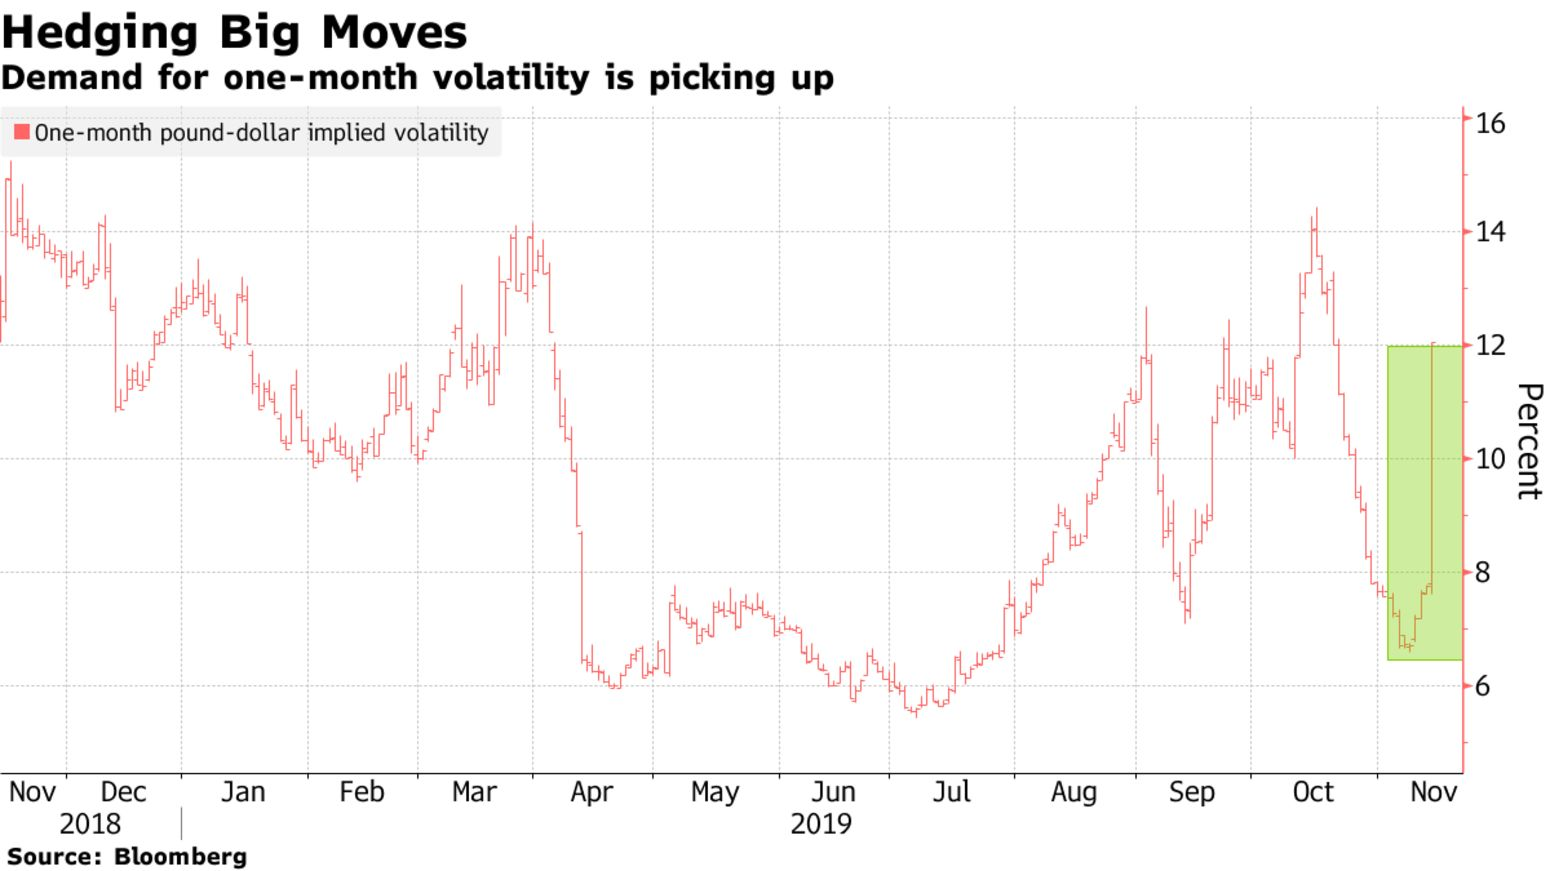 Demand for one-month volatility is picking up